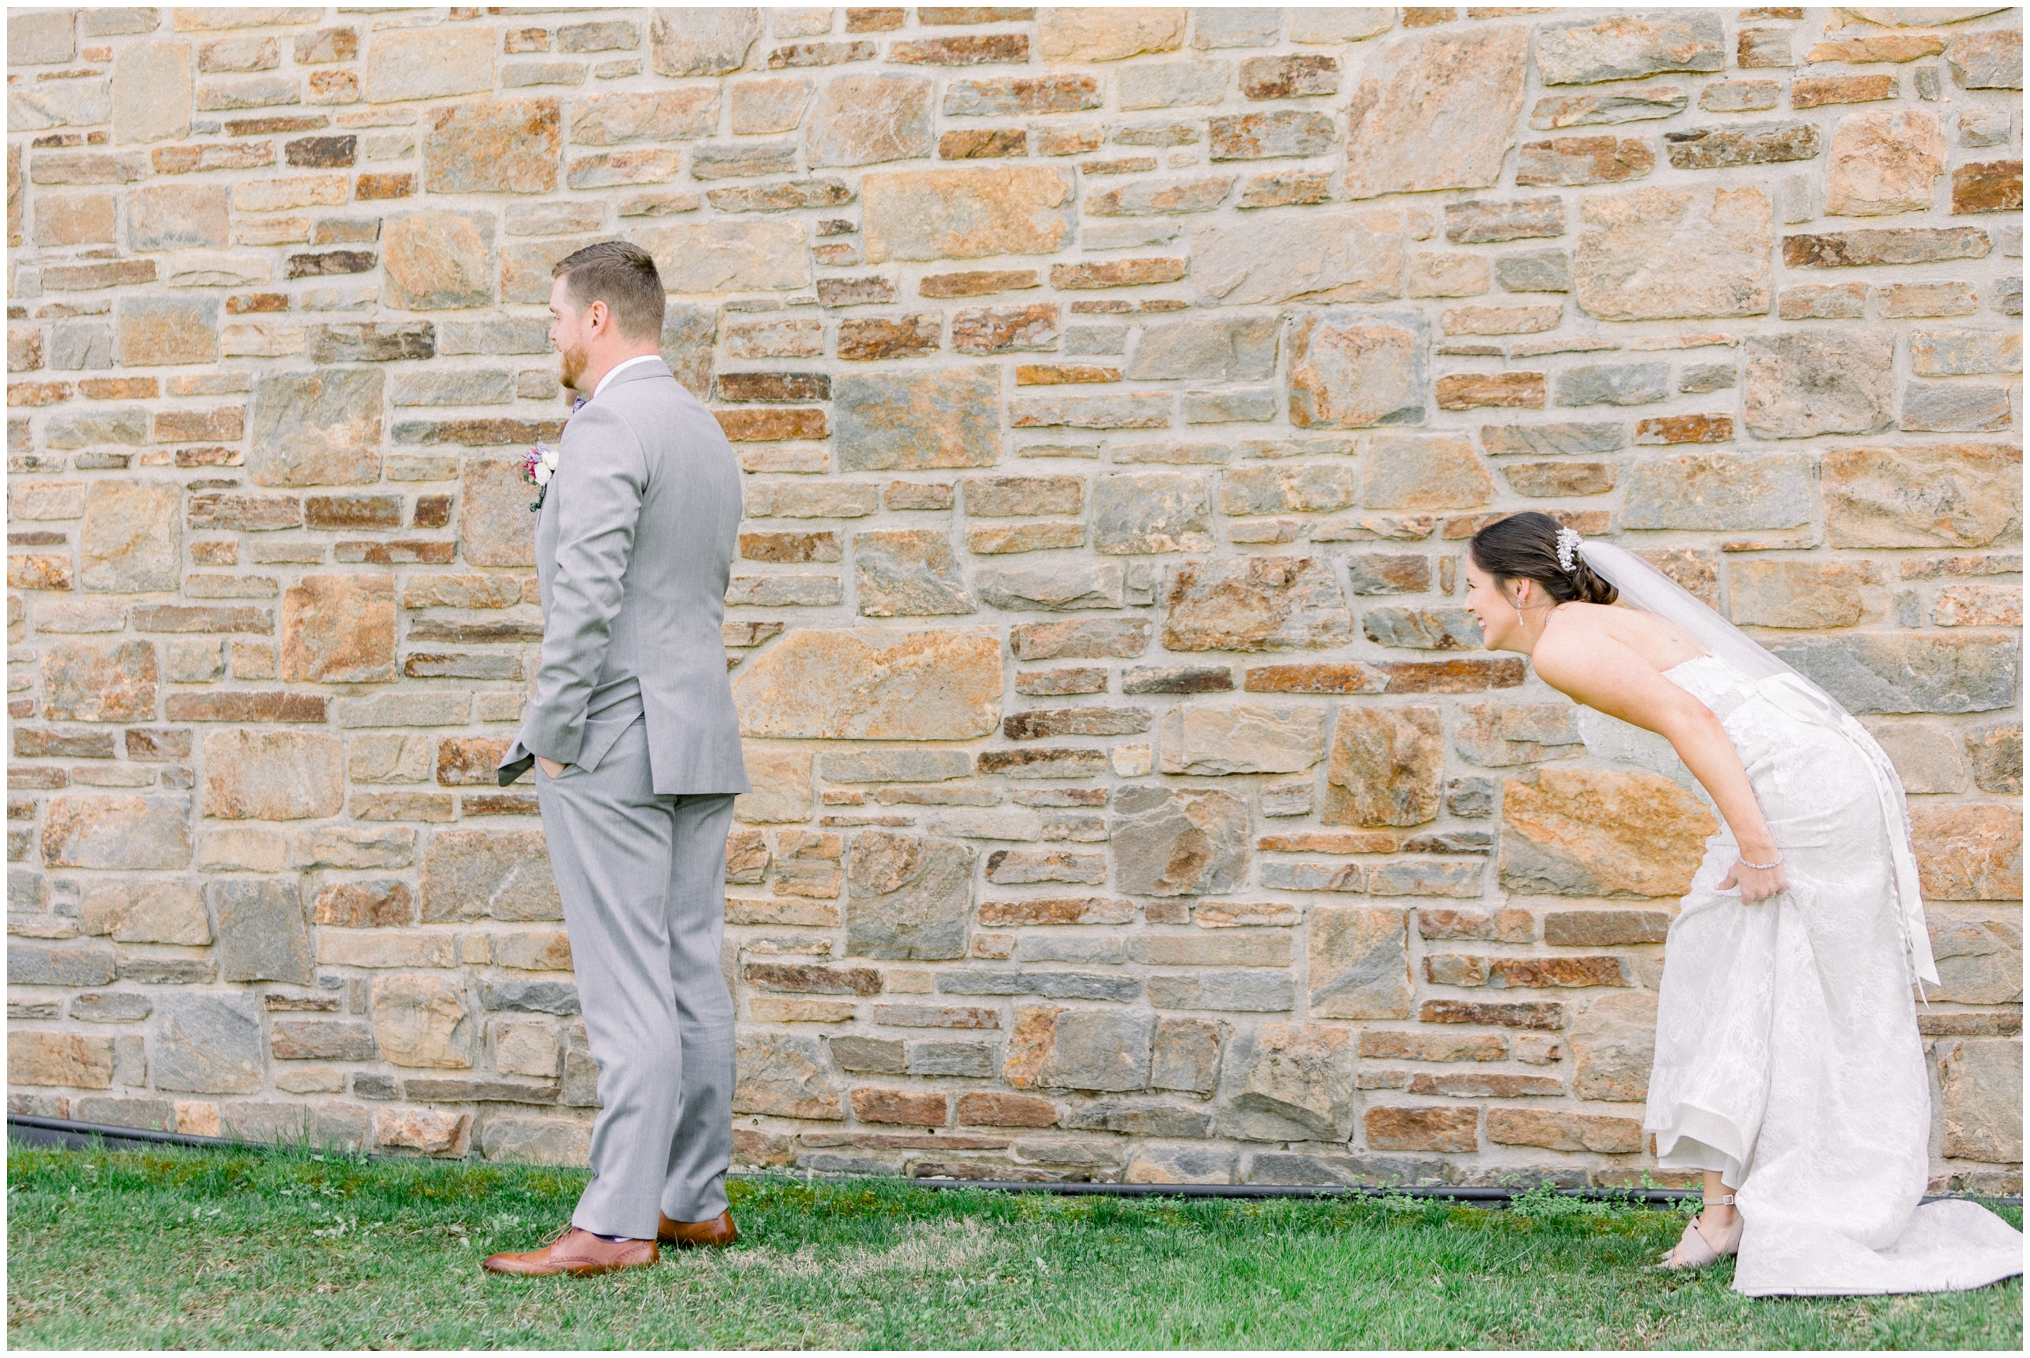 Krista Brackin Photography | April Wedding at The Carriage House at Rockwood Park_0034.jpg